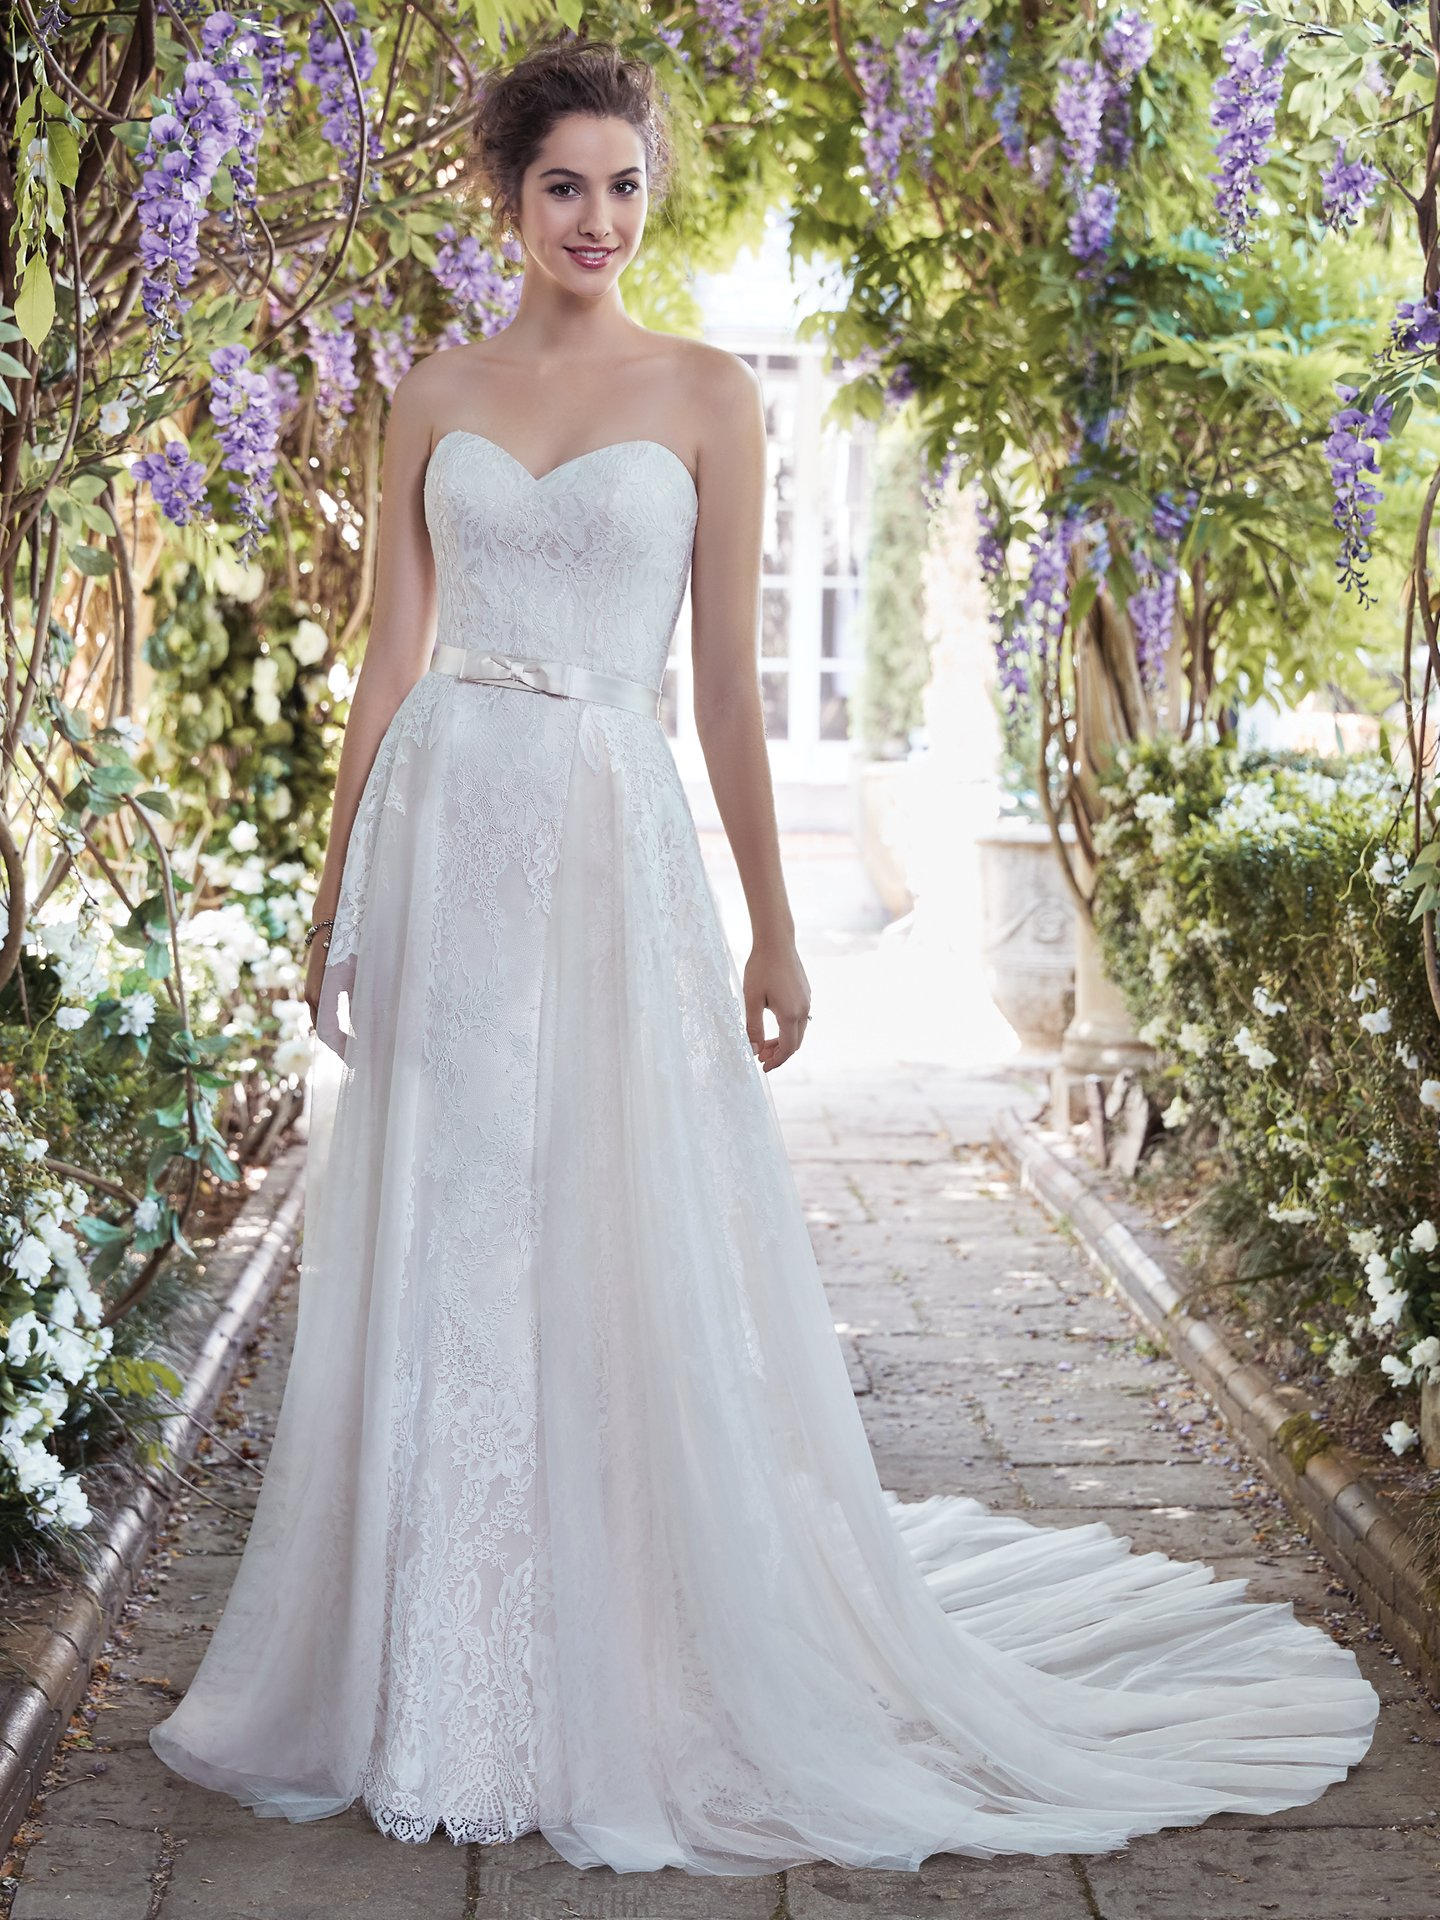 Octavia wedding dress with cute tulle overskirt and silk bow. - The Latest Wedding Dress Trends for Engagement Season 2018